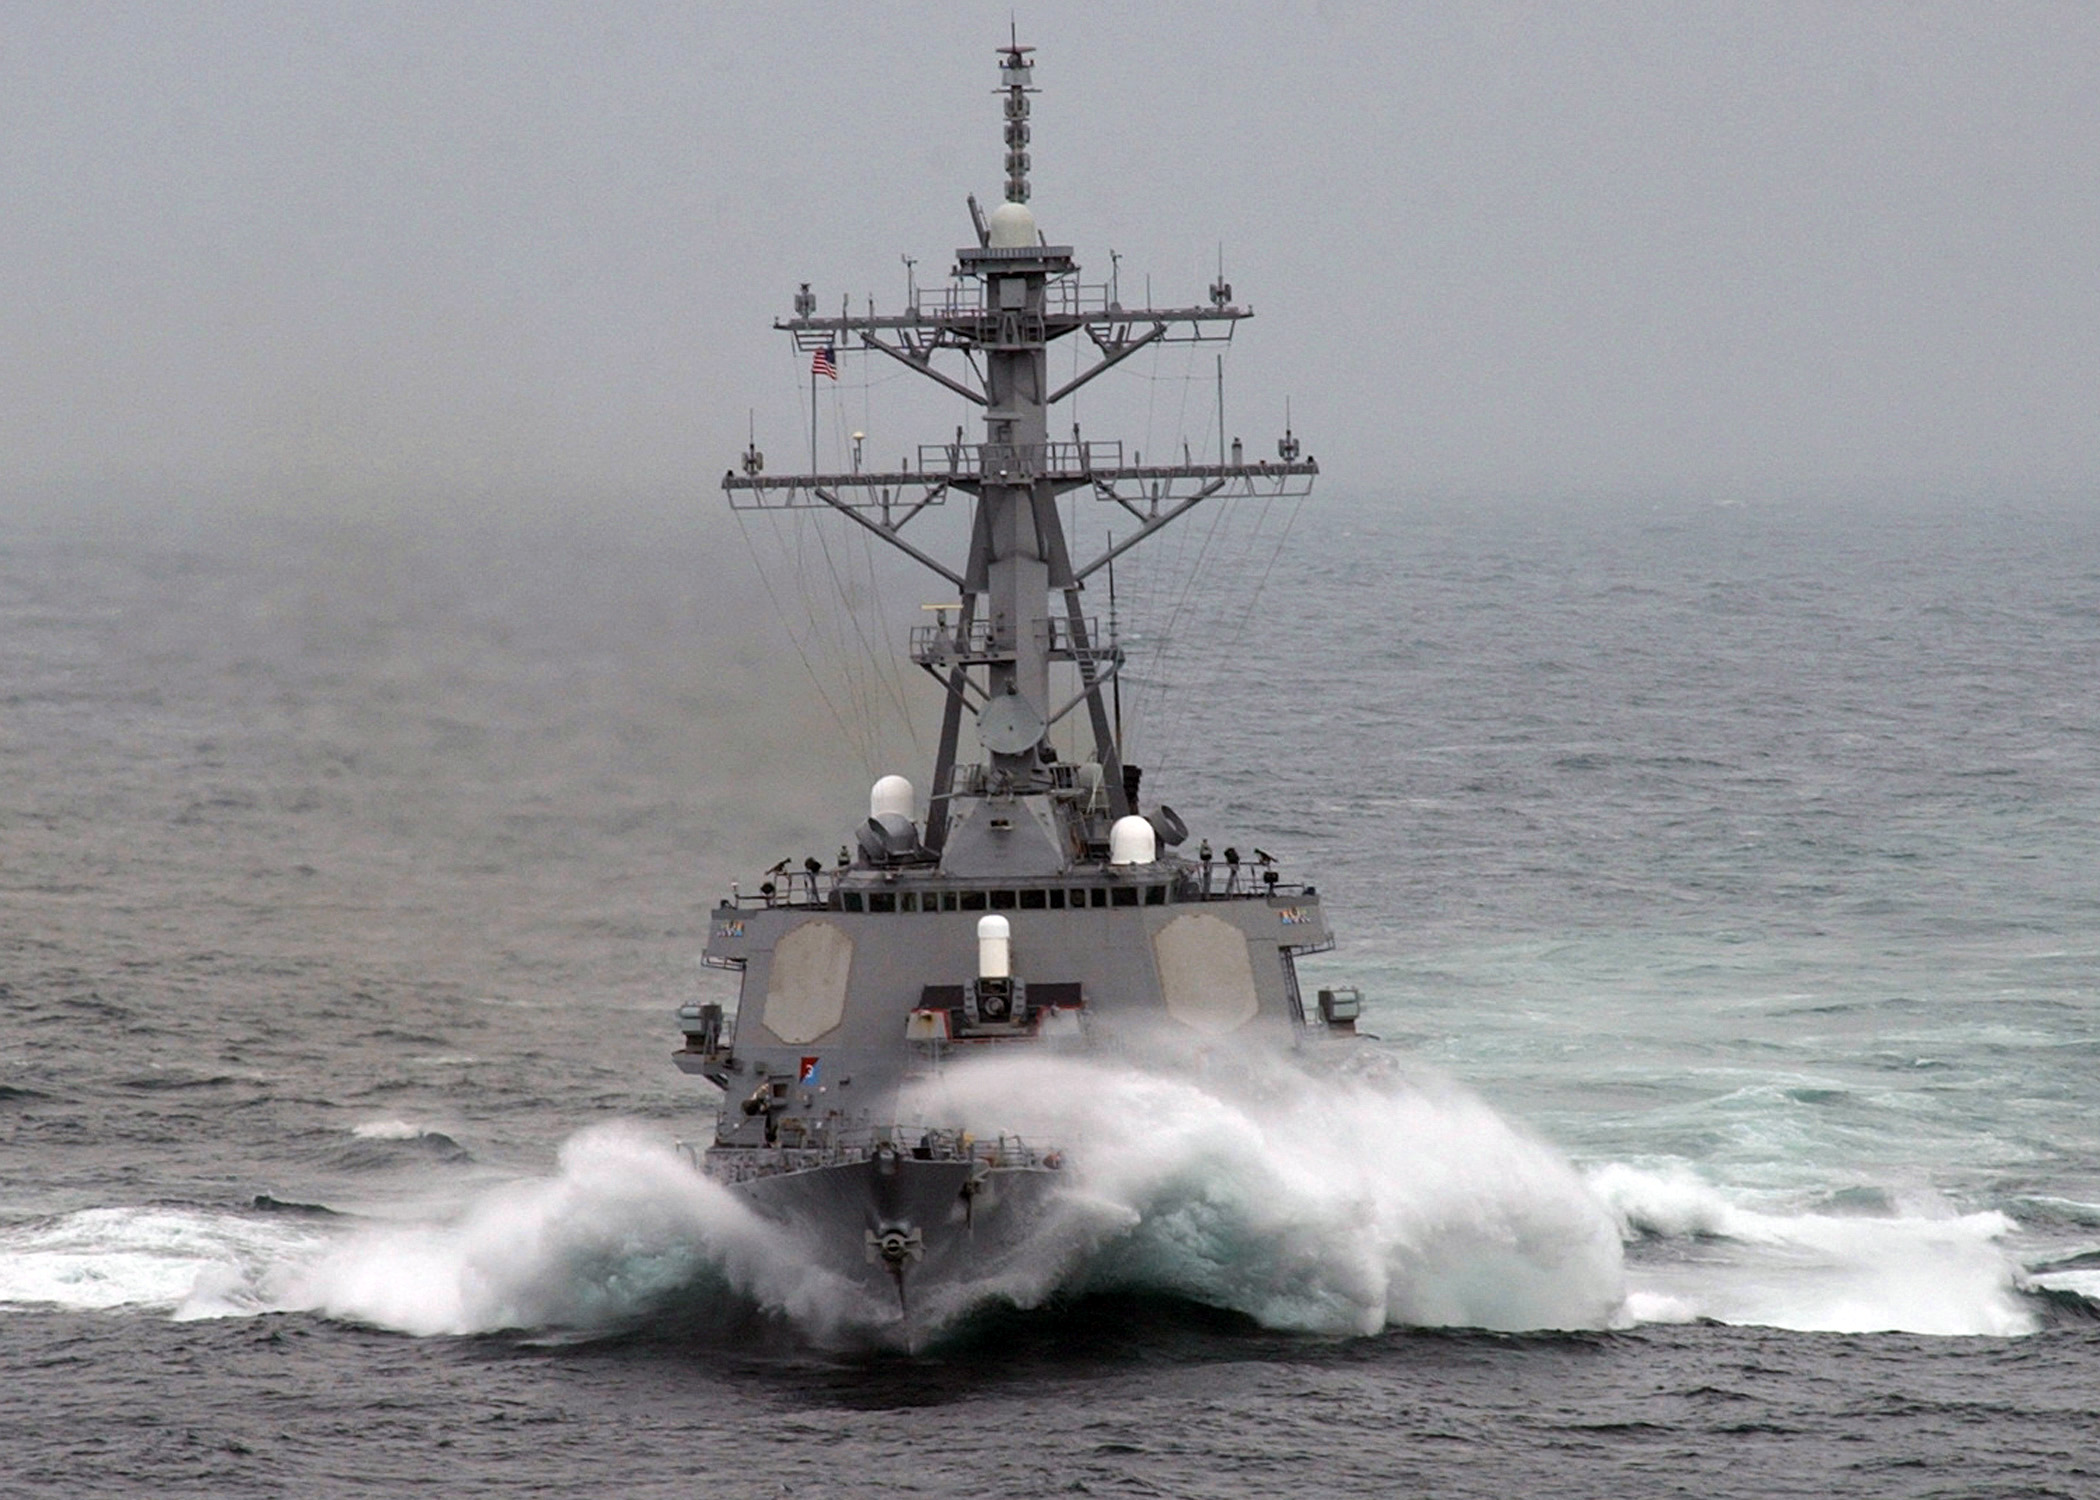 File US Navy 050402 N 6363M 027 Waves crash over the bow of the Arleigh Burke Class guided missile destroyer USS Barry  DDG 52  as she plows through heavy seas while underway in the Mediterranean Sea further File Kroger further 25 media tumblr   3cc0122104a487121230889c58d16311 tumblr mhm05egtvk1r85dkto1 500 as well 24 media tumblr   tumblr m7ufihiYDa1rbl30po1 400 as well 212716. on oscar meyer edit